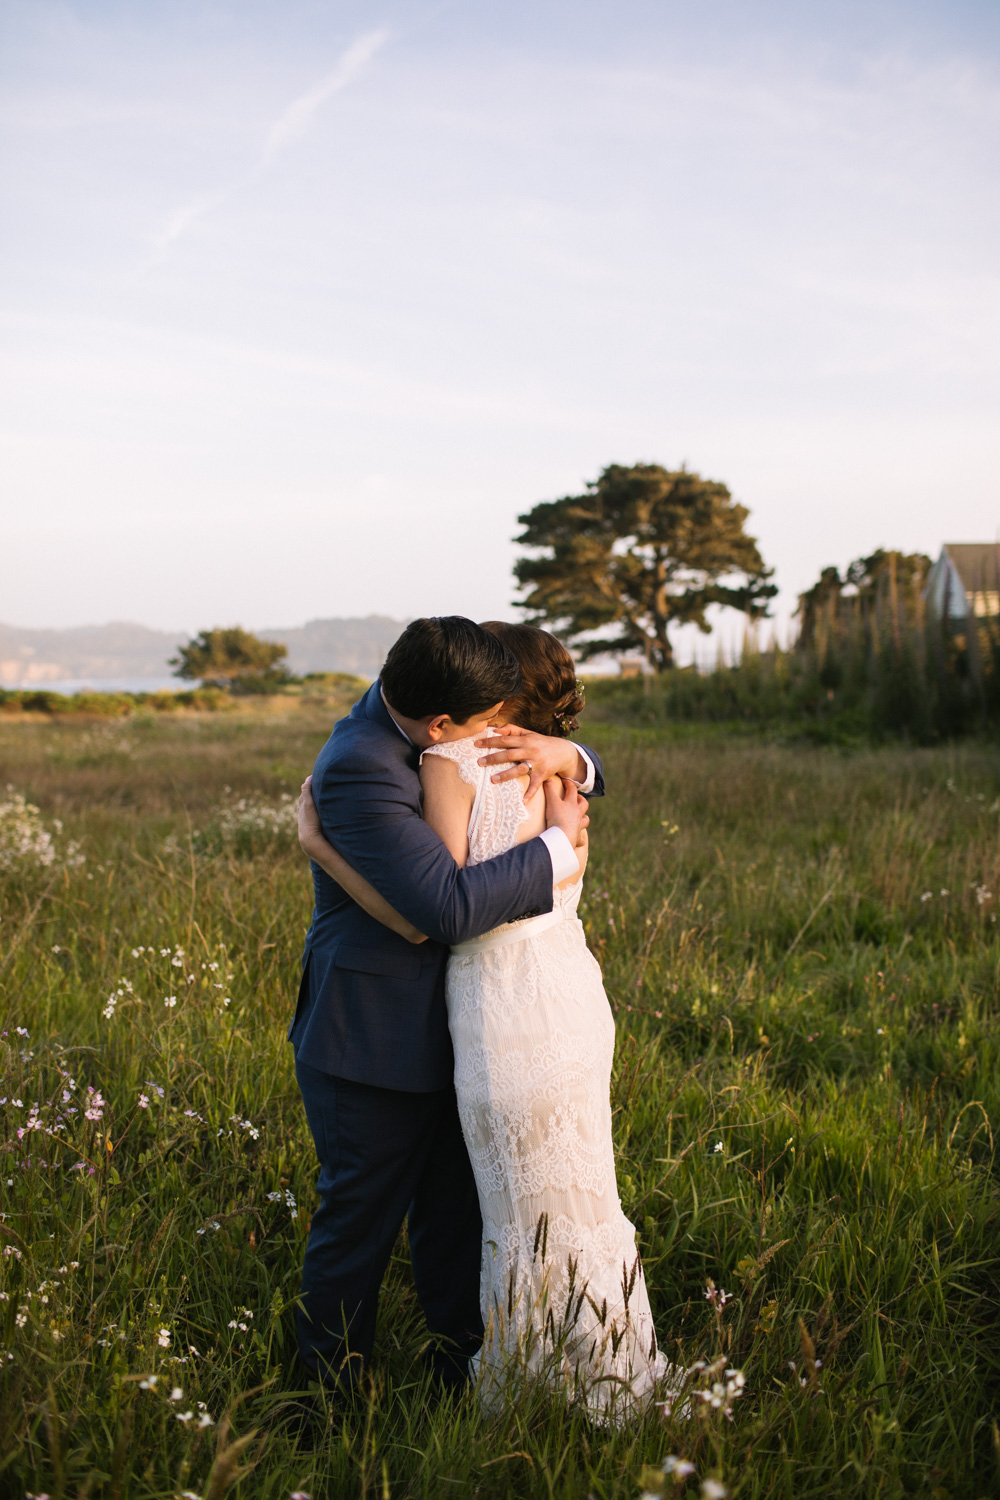 mendocino-wedding-photographer-13.jpg